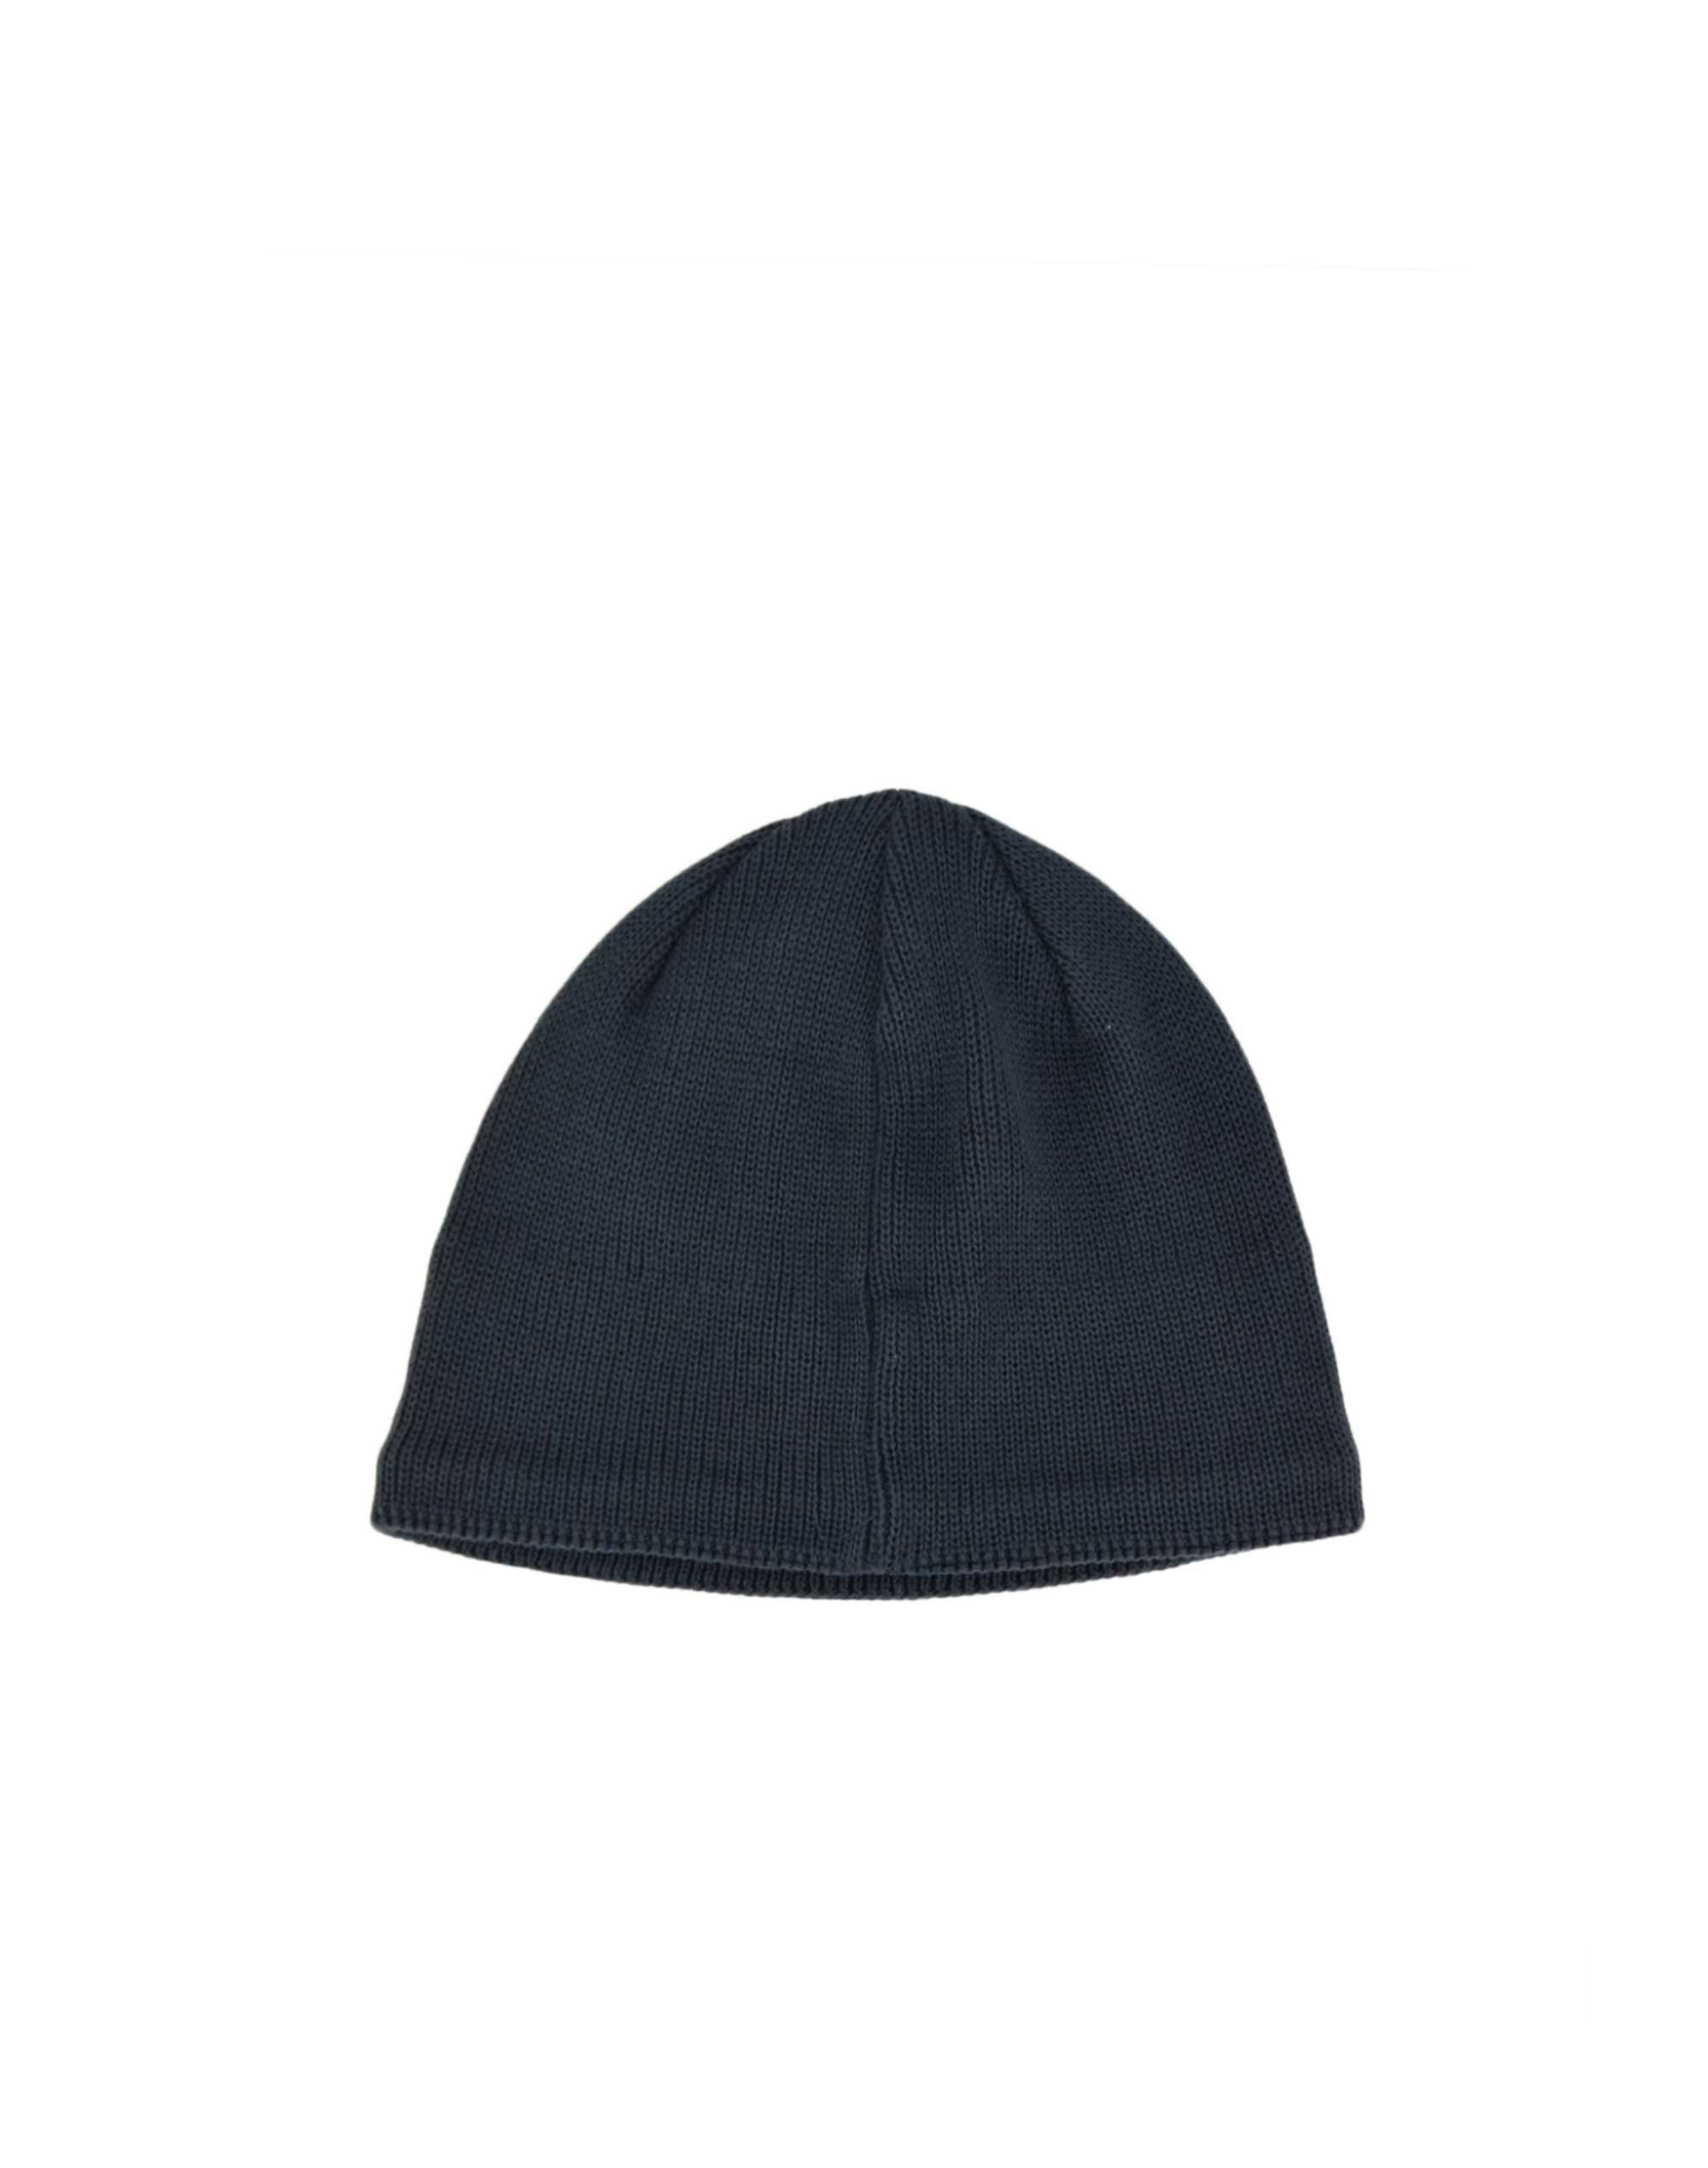 The North Face Bones Recycled Beanie (NF0A3FNS0C51) Asphalt Grey